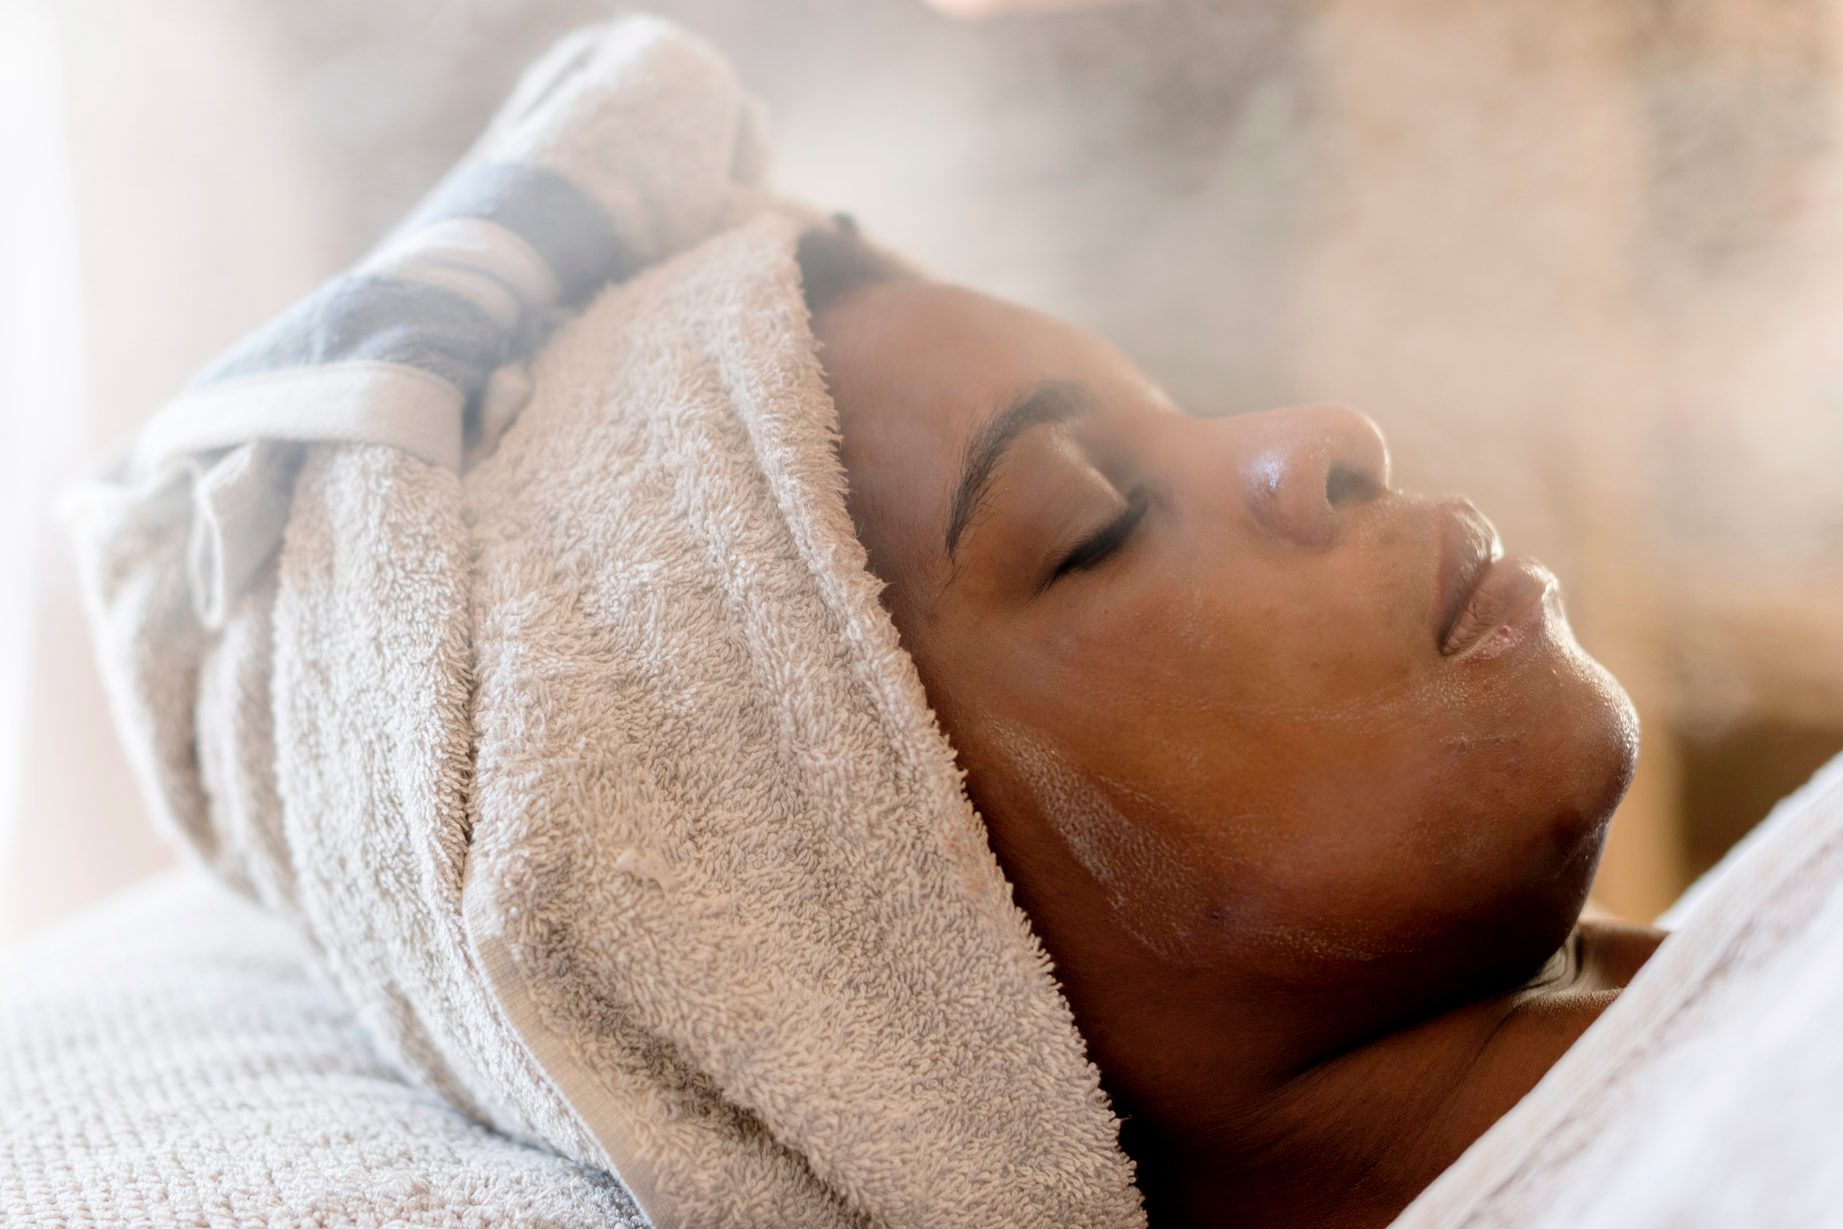 woman with towel on her hair receiving steam treatment at spa